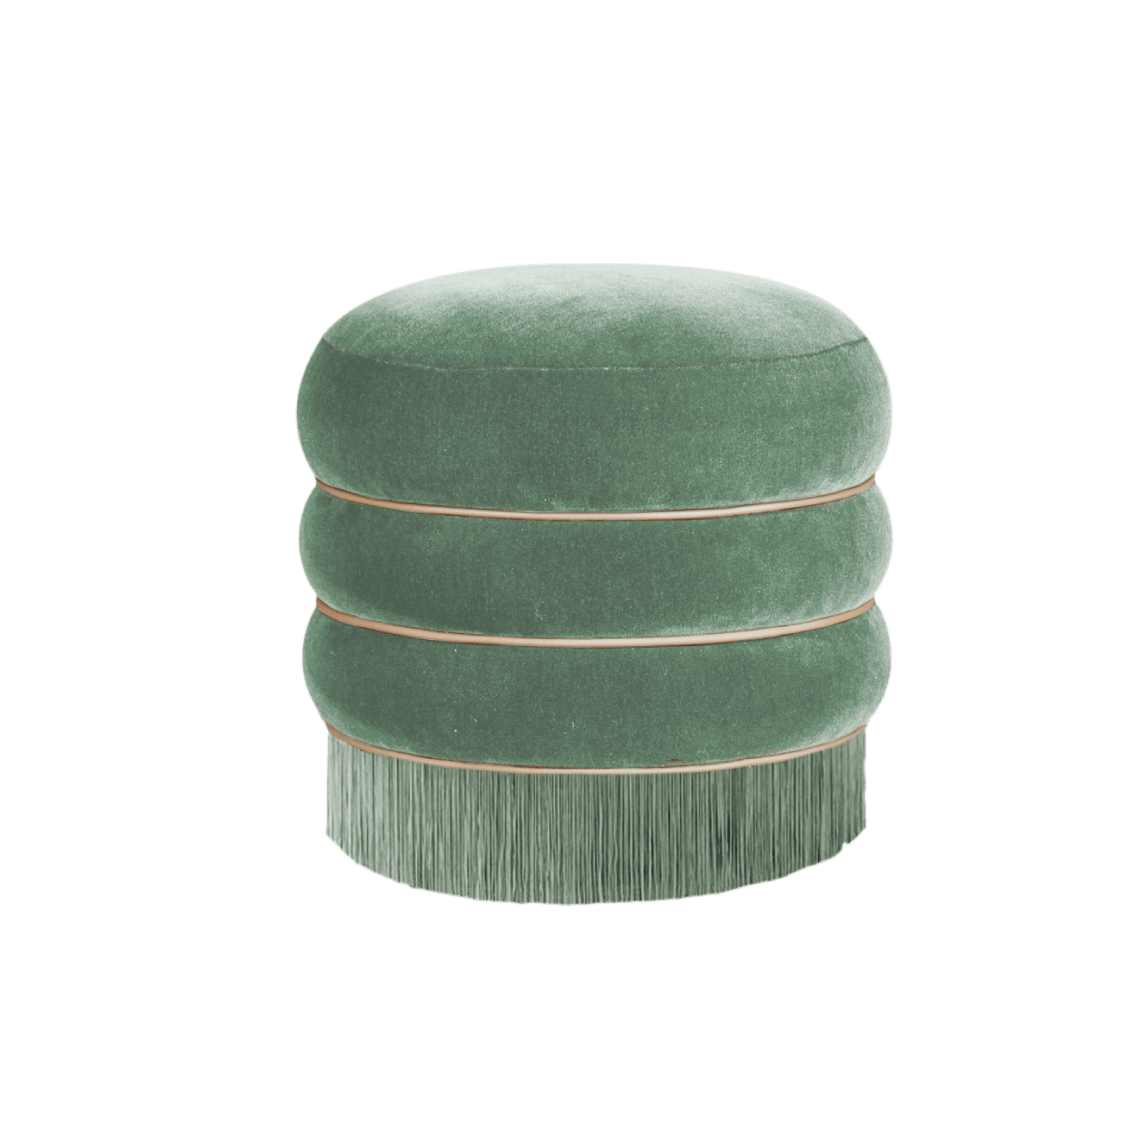 Audrey Mid-Century Modern Stool in green velvet with fringes